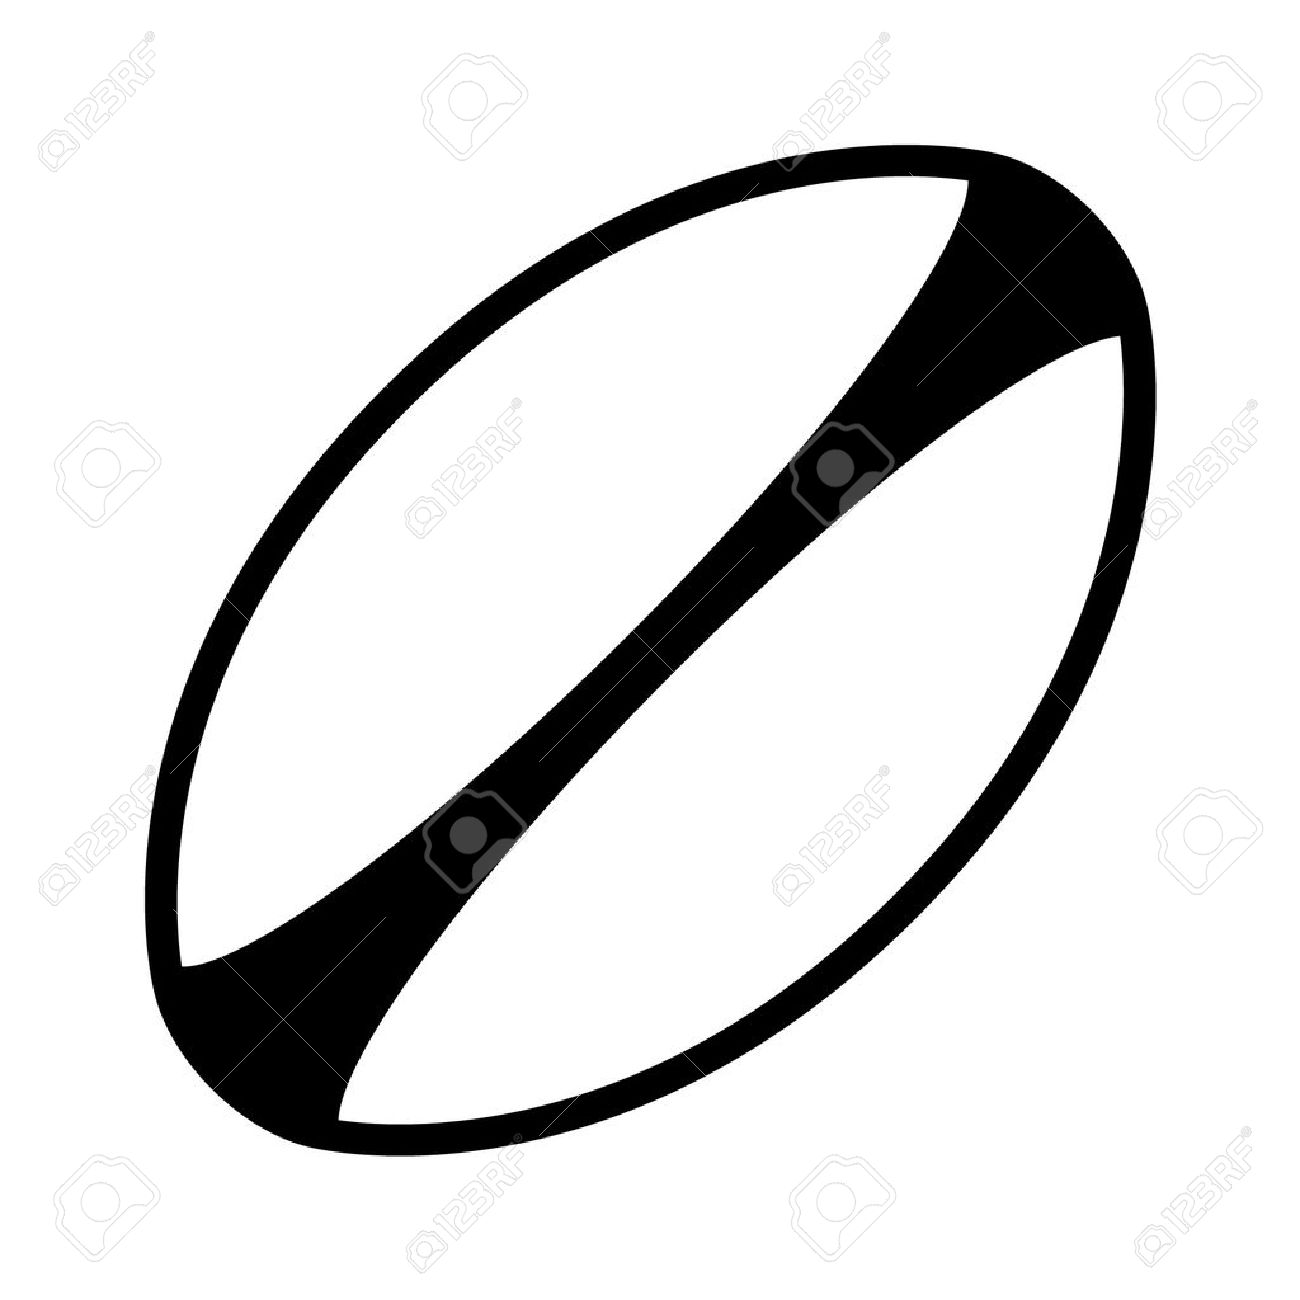 white rugby ball with stripes line art icon royalty free cliparts rh 123rf com rugby ball clipart free rugby ball clipart black and white